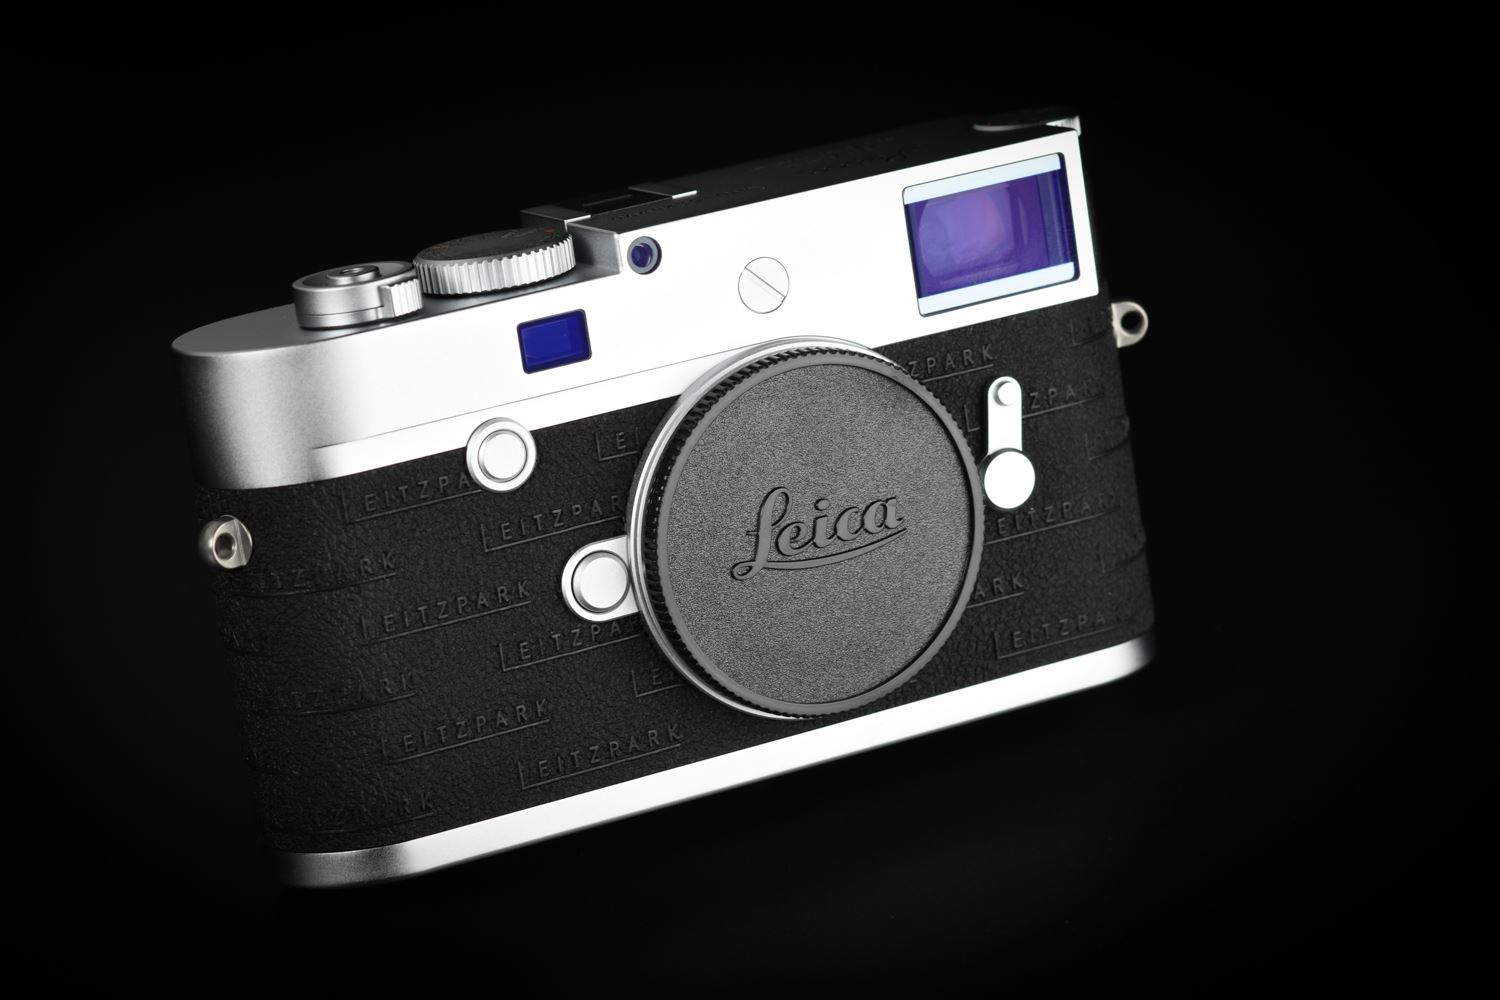 Picture of Leica M10 Leitzpark Edition Silver